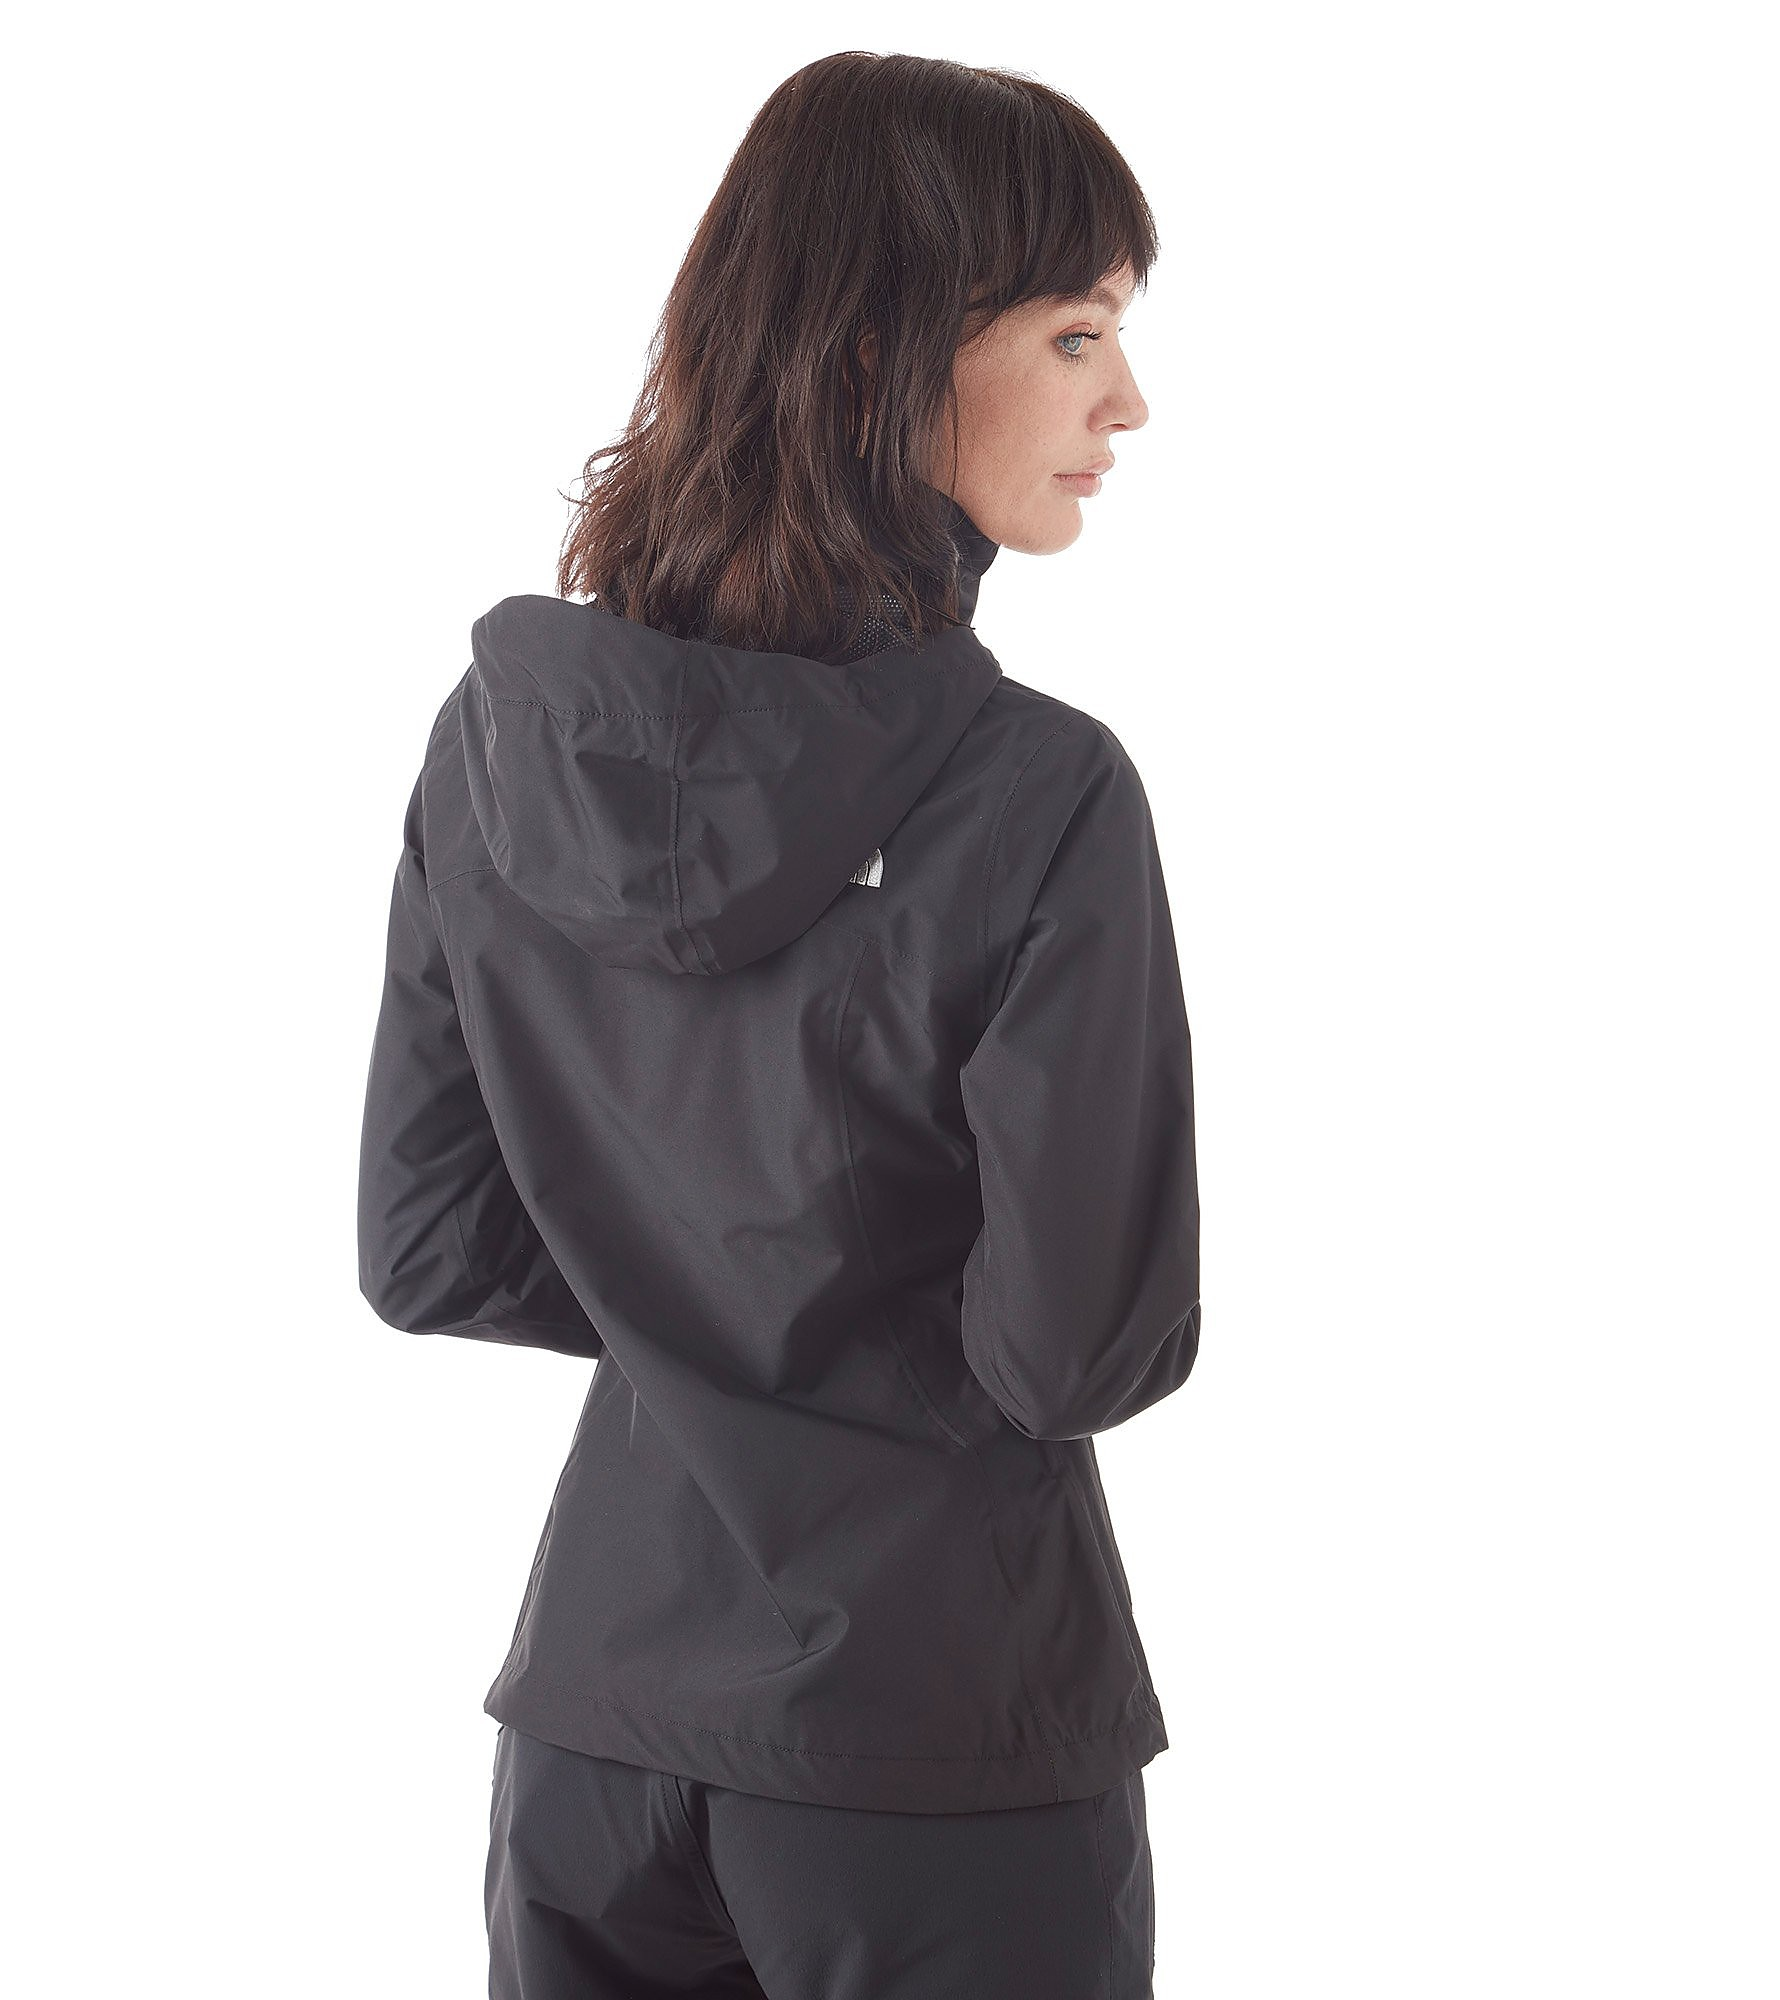 The North Face Sangro Ladies Jacket